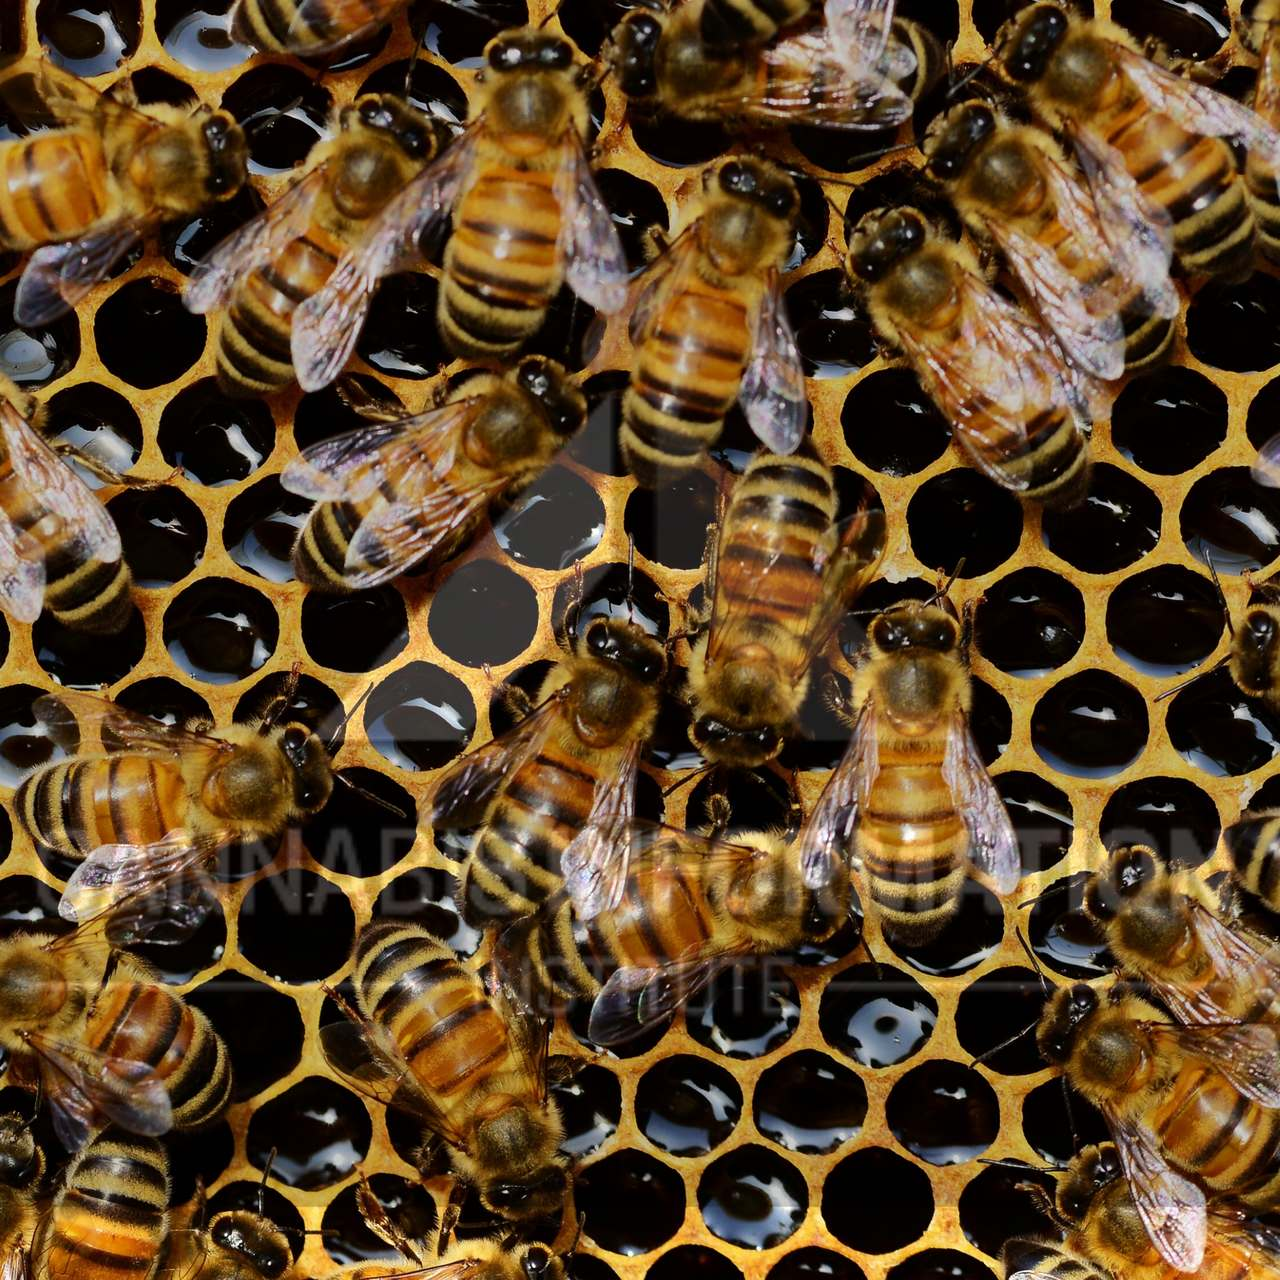 can bees make cannabis honey, hemp honey bees, do bees pollinate weeds, is cannahoney real, canna nectar, how do bees make honey, trained bees, high bees, does hemp honey get you high, how to make cannabis honey, cannahoney, cannabis edibles info, endocannabinoid system, honeybees and cannabis plants, do bees produce THC honey, CBD honey from bees,